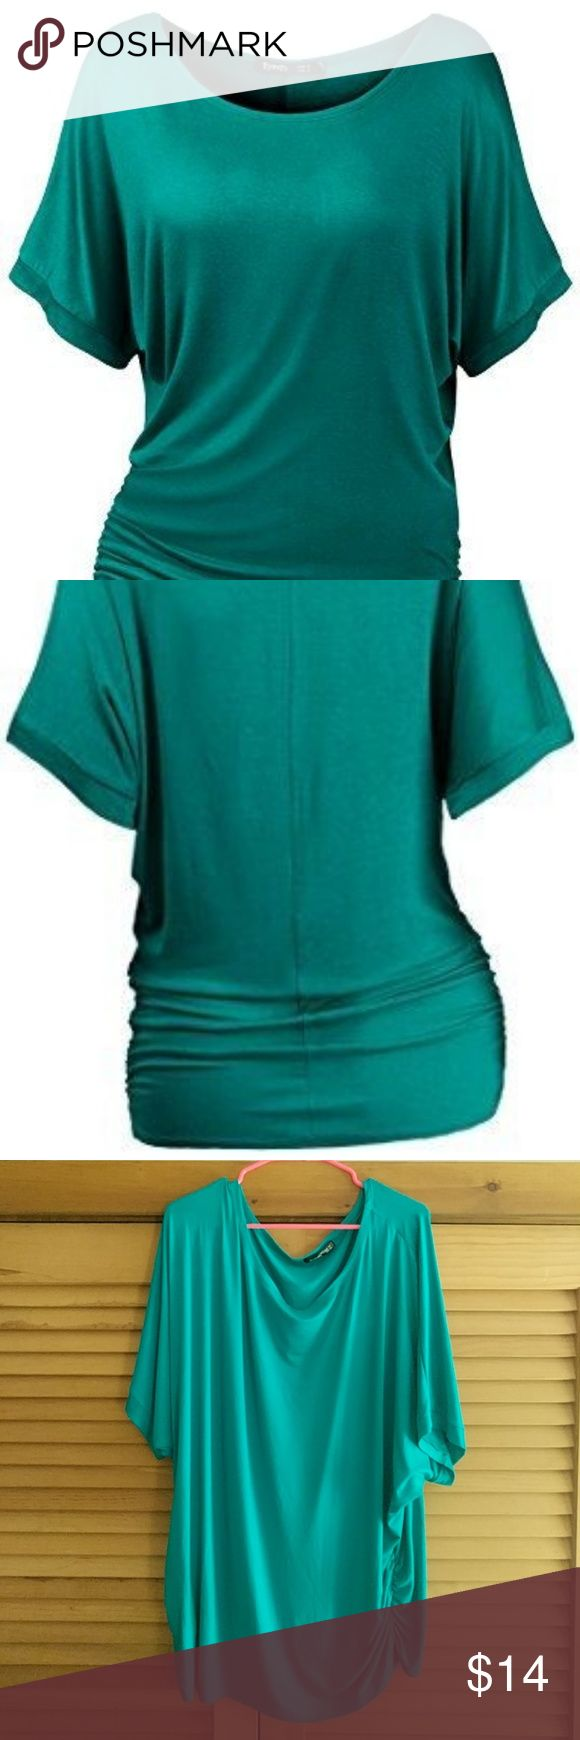 Plus size dolman drape tunic in jade green Gorgeous green top is super soft and lightweight. Has shirring on the sides, so you can wear it long like a tunic, or loosely ruche it around your waist and hips (disguises belly effectively!) Slouchy cut with a scooped back and kimono sleeves, it has great stretch and drape. I love this brand and have TONS of their tops!! NWOT, has never been worn. Thanth Tops Tunics